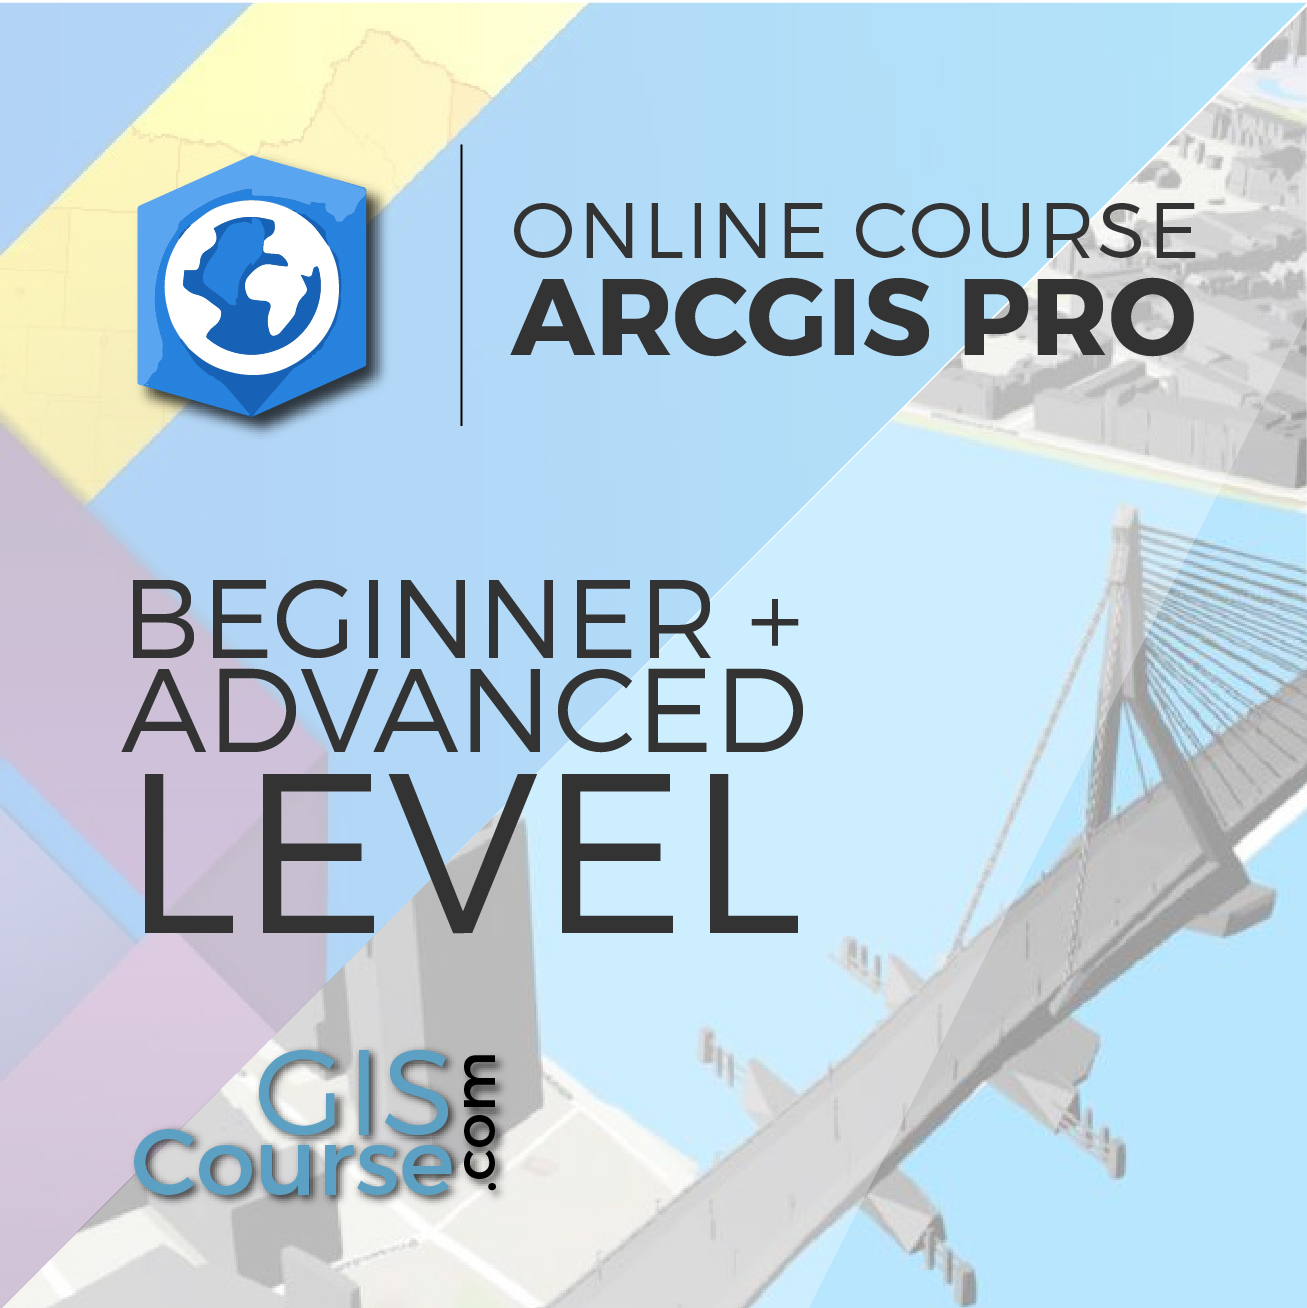 Arcgis Pro Specialist From Beginner To Advanced Gis Course Tyc